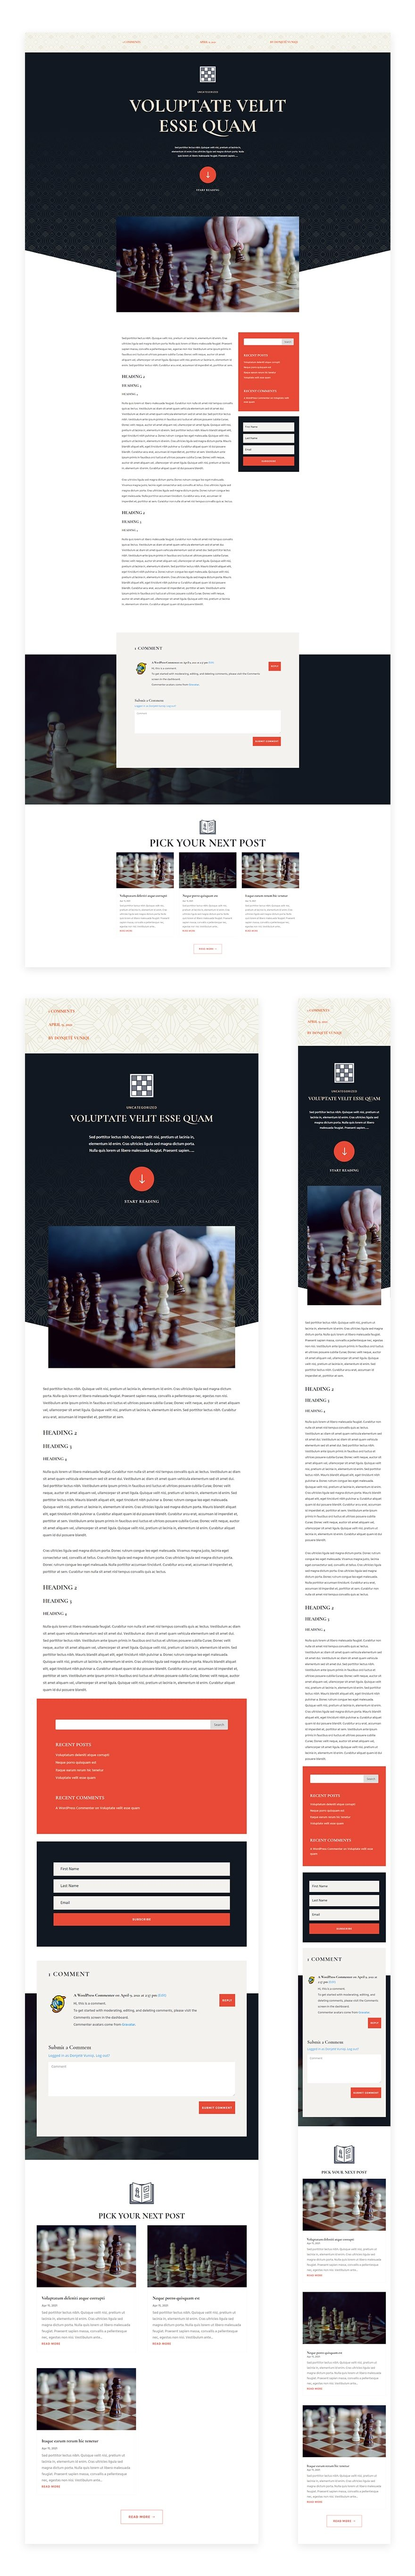 download-a-free-blog-post-template-for-divis-chess-club-layout-pack Download a FREE Blog Post Template for Divi's Chess Club Layout Pack